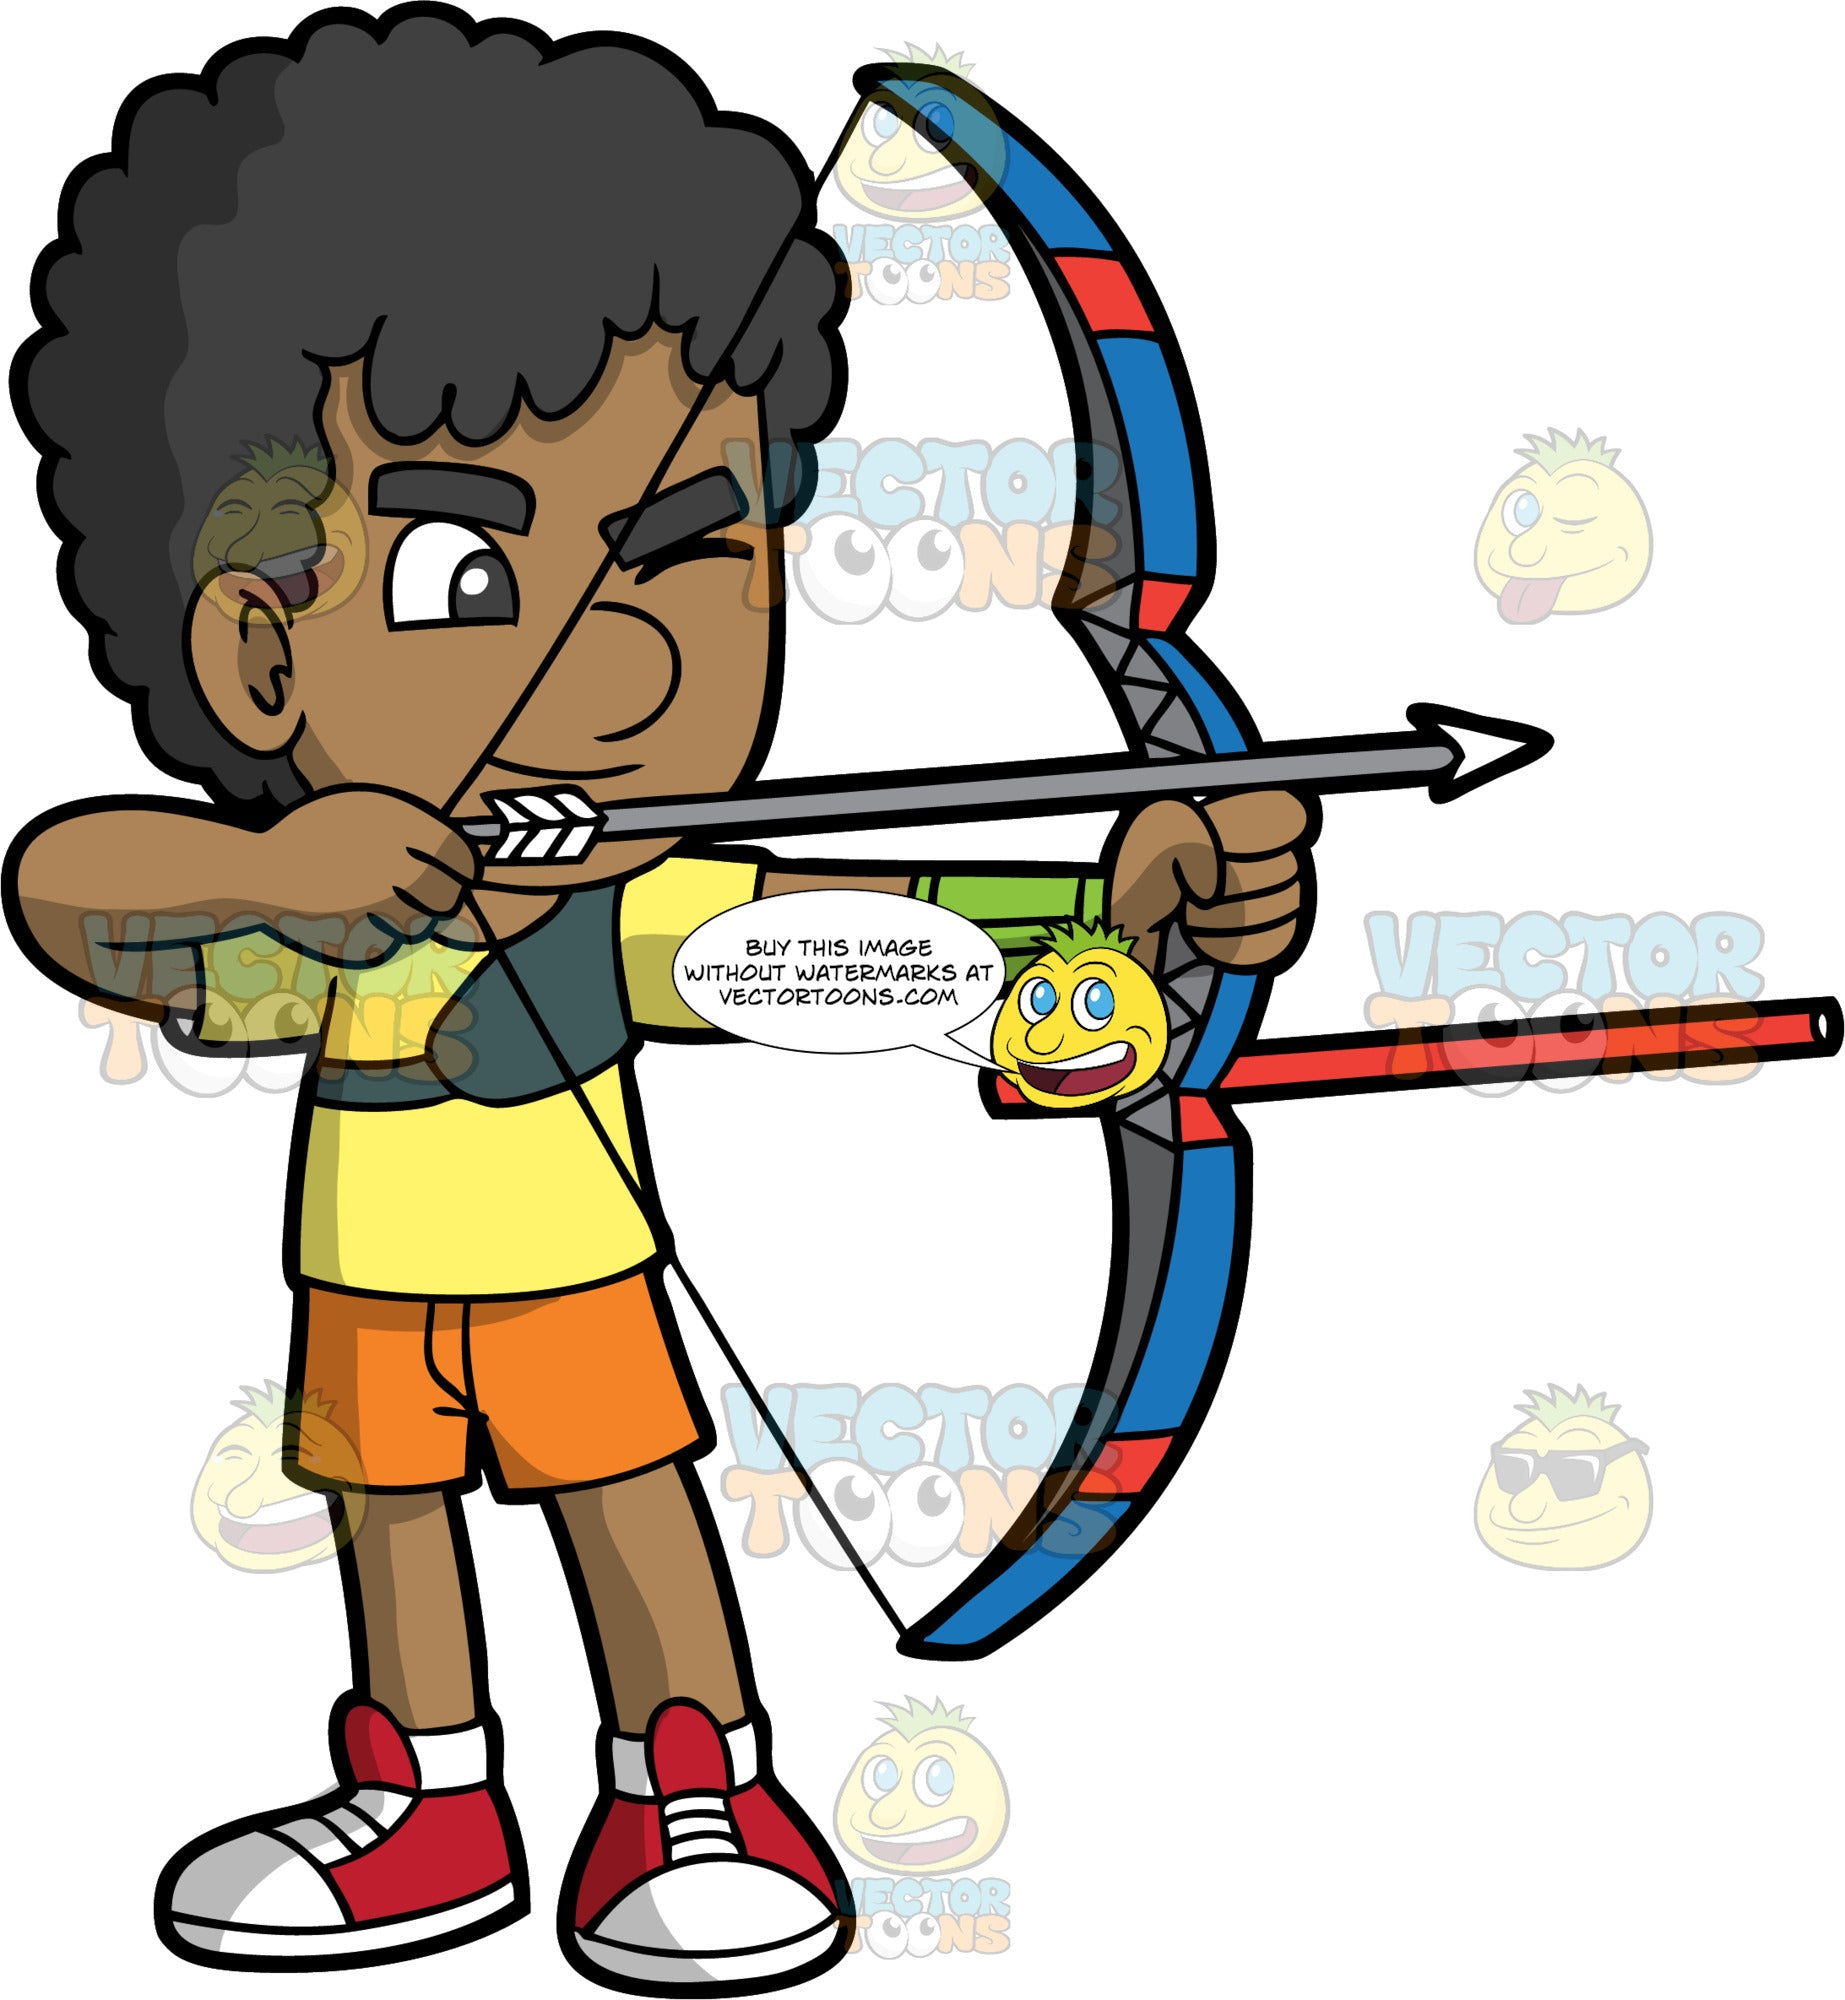 Brown skinned boy holding a bow and arrow. Young boy with brown skin and black hair holding a bow and arrow about to shoot. Closing one eye wearing red shoes, orange shorts and a yellow shirt.